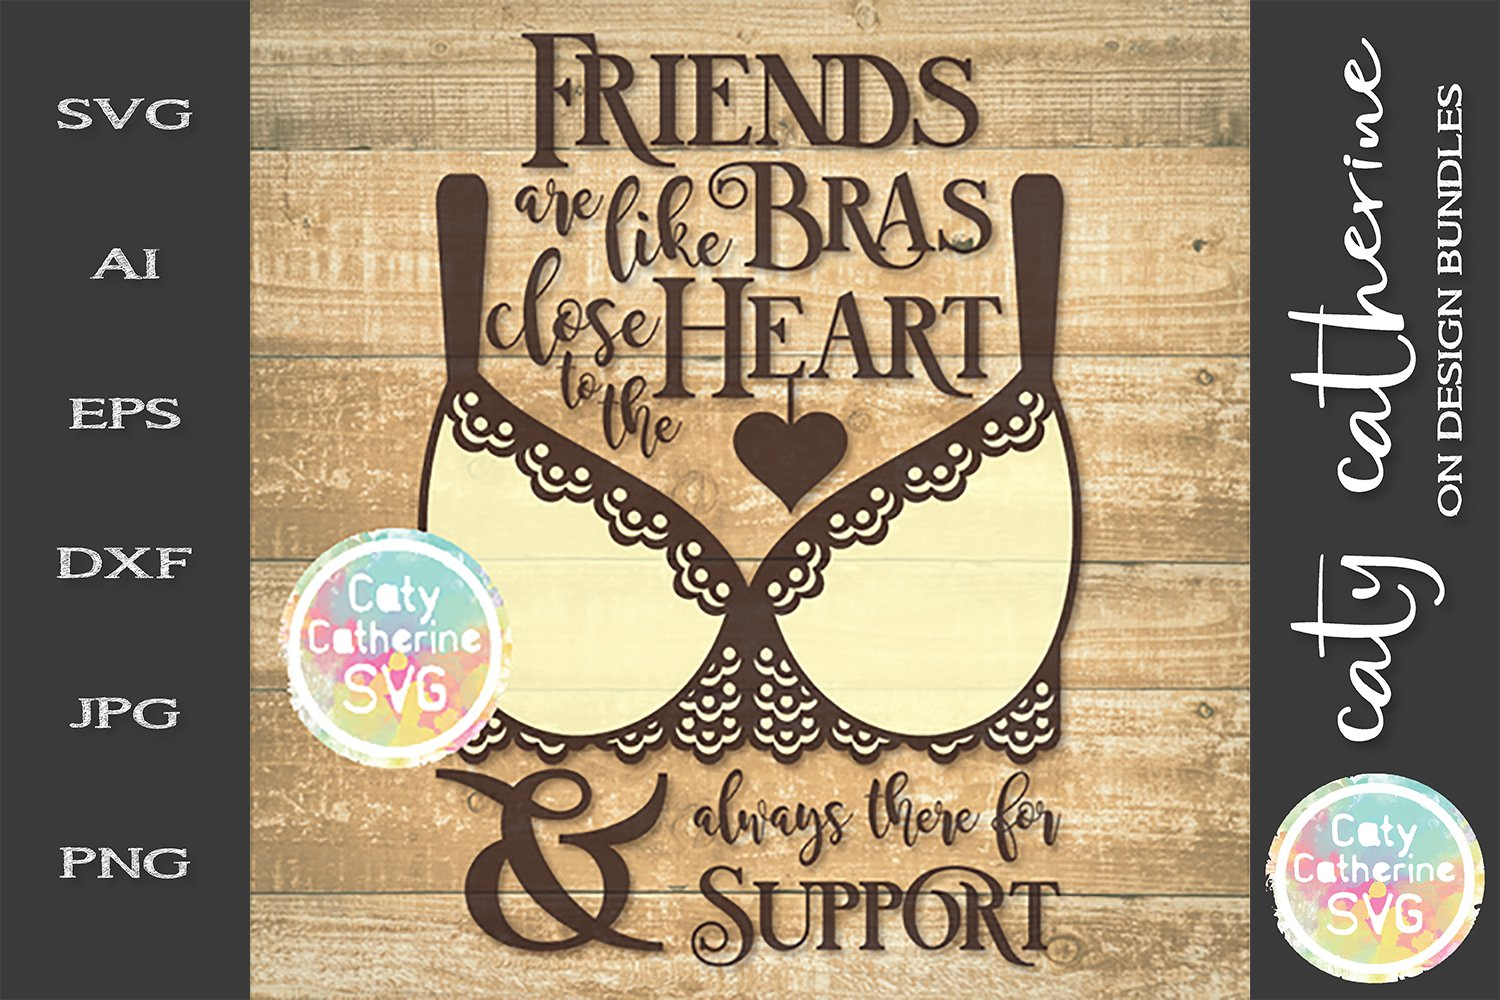 Download Friends Are Like Bras Close To The Heart Svg Cut File 244977 Svgs Design Bundles